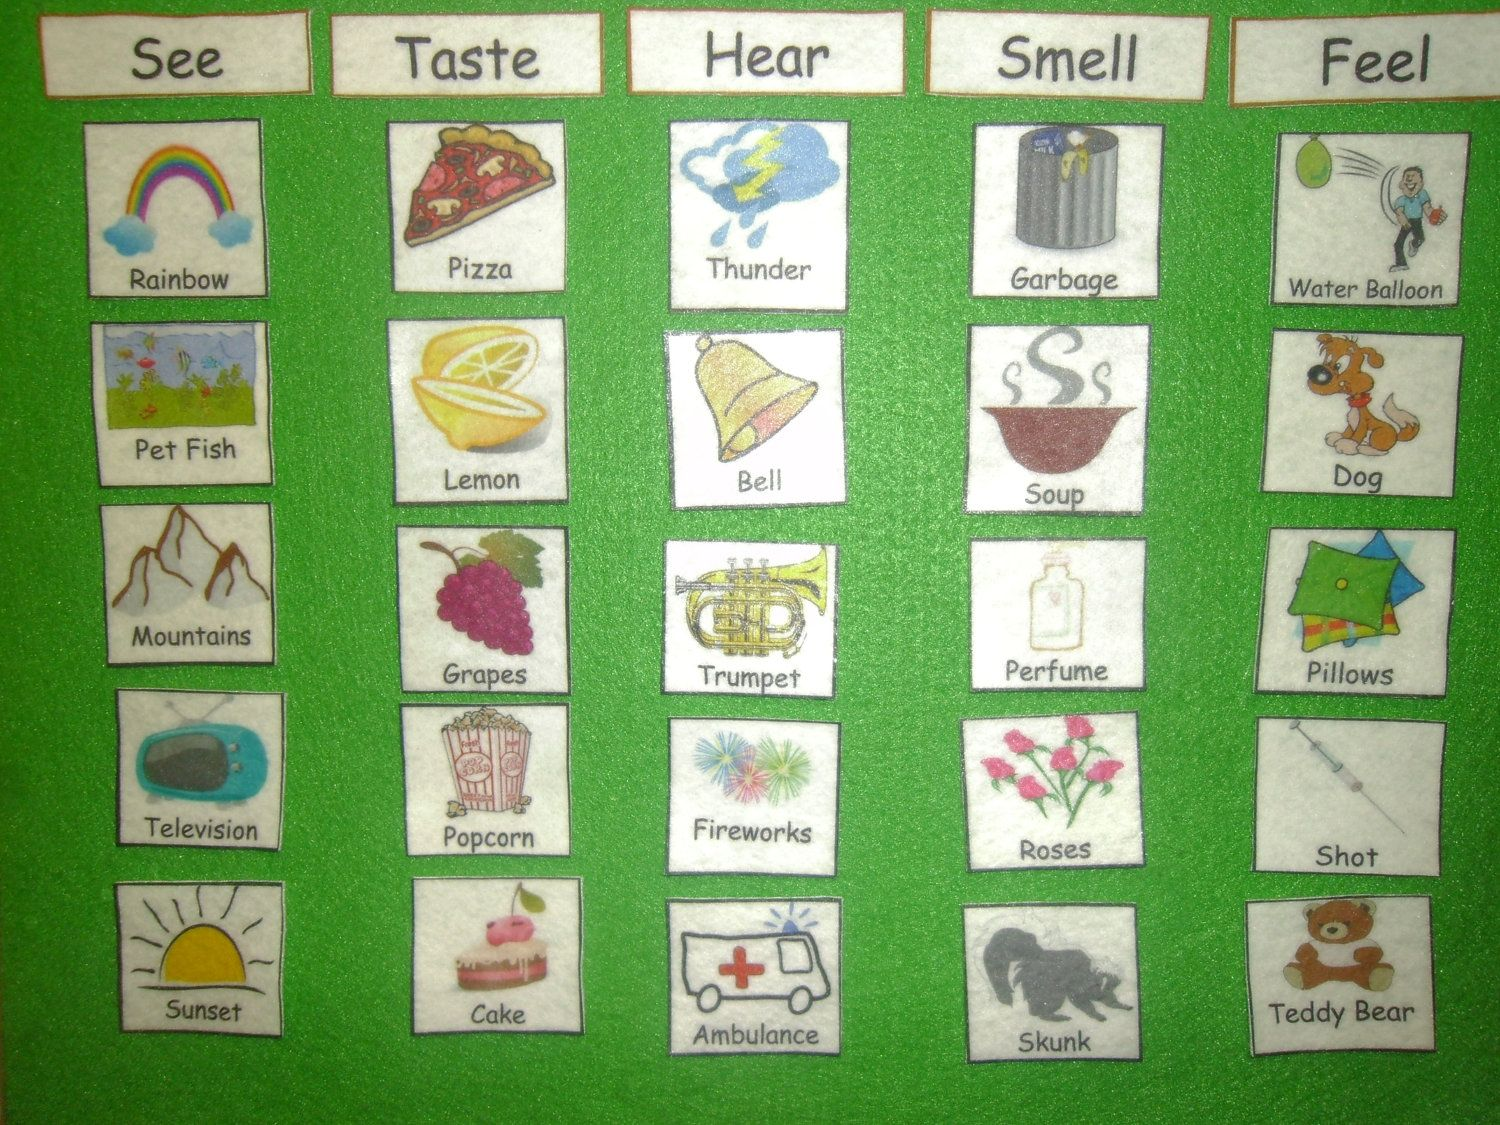 Felt Board Set 5 Senses Match English Spanish Or Dual By